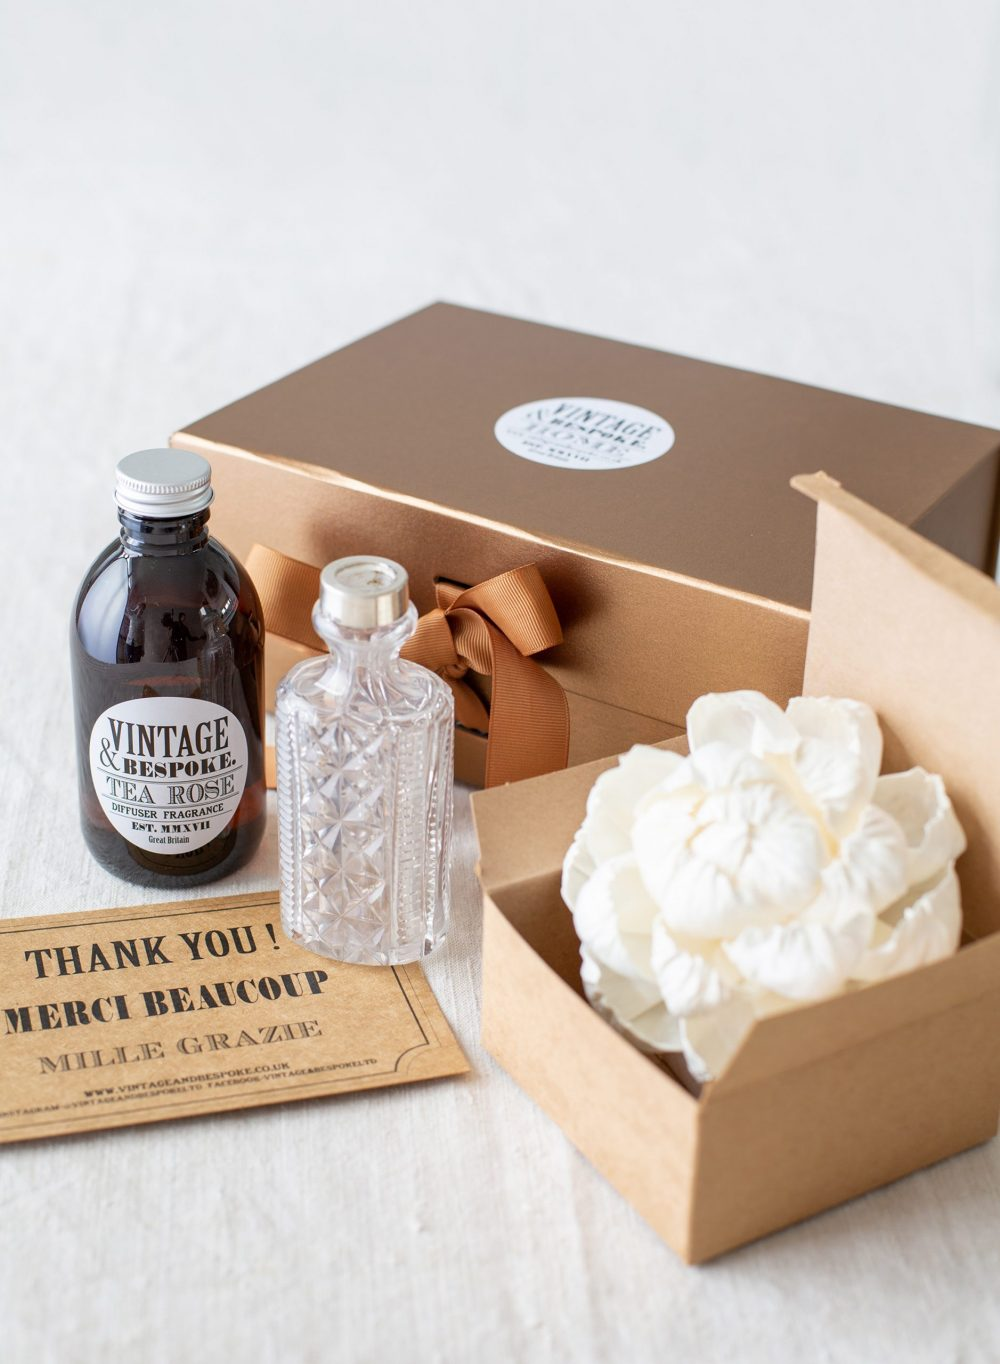 Ultimate Flower Diffuser Gift Box from Vintage and Bespoke